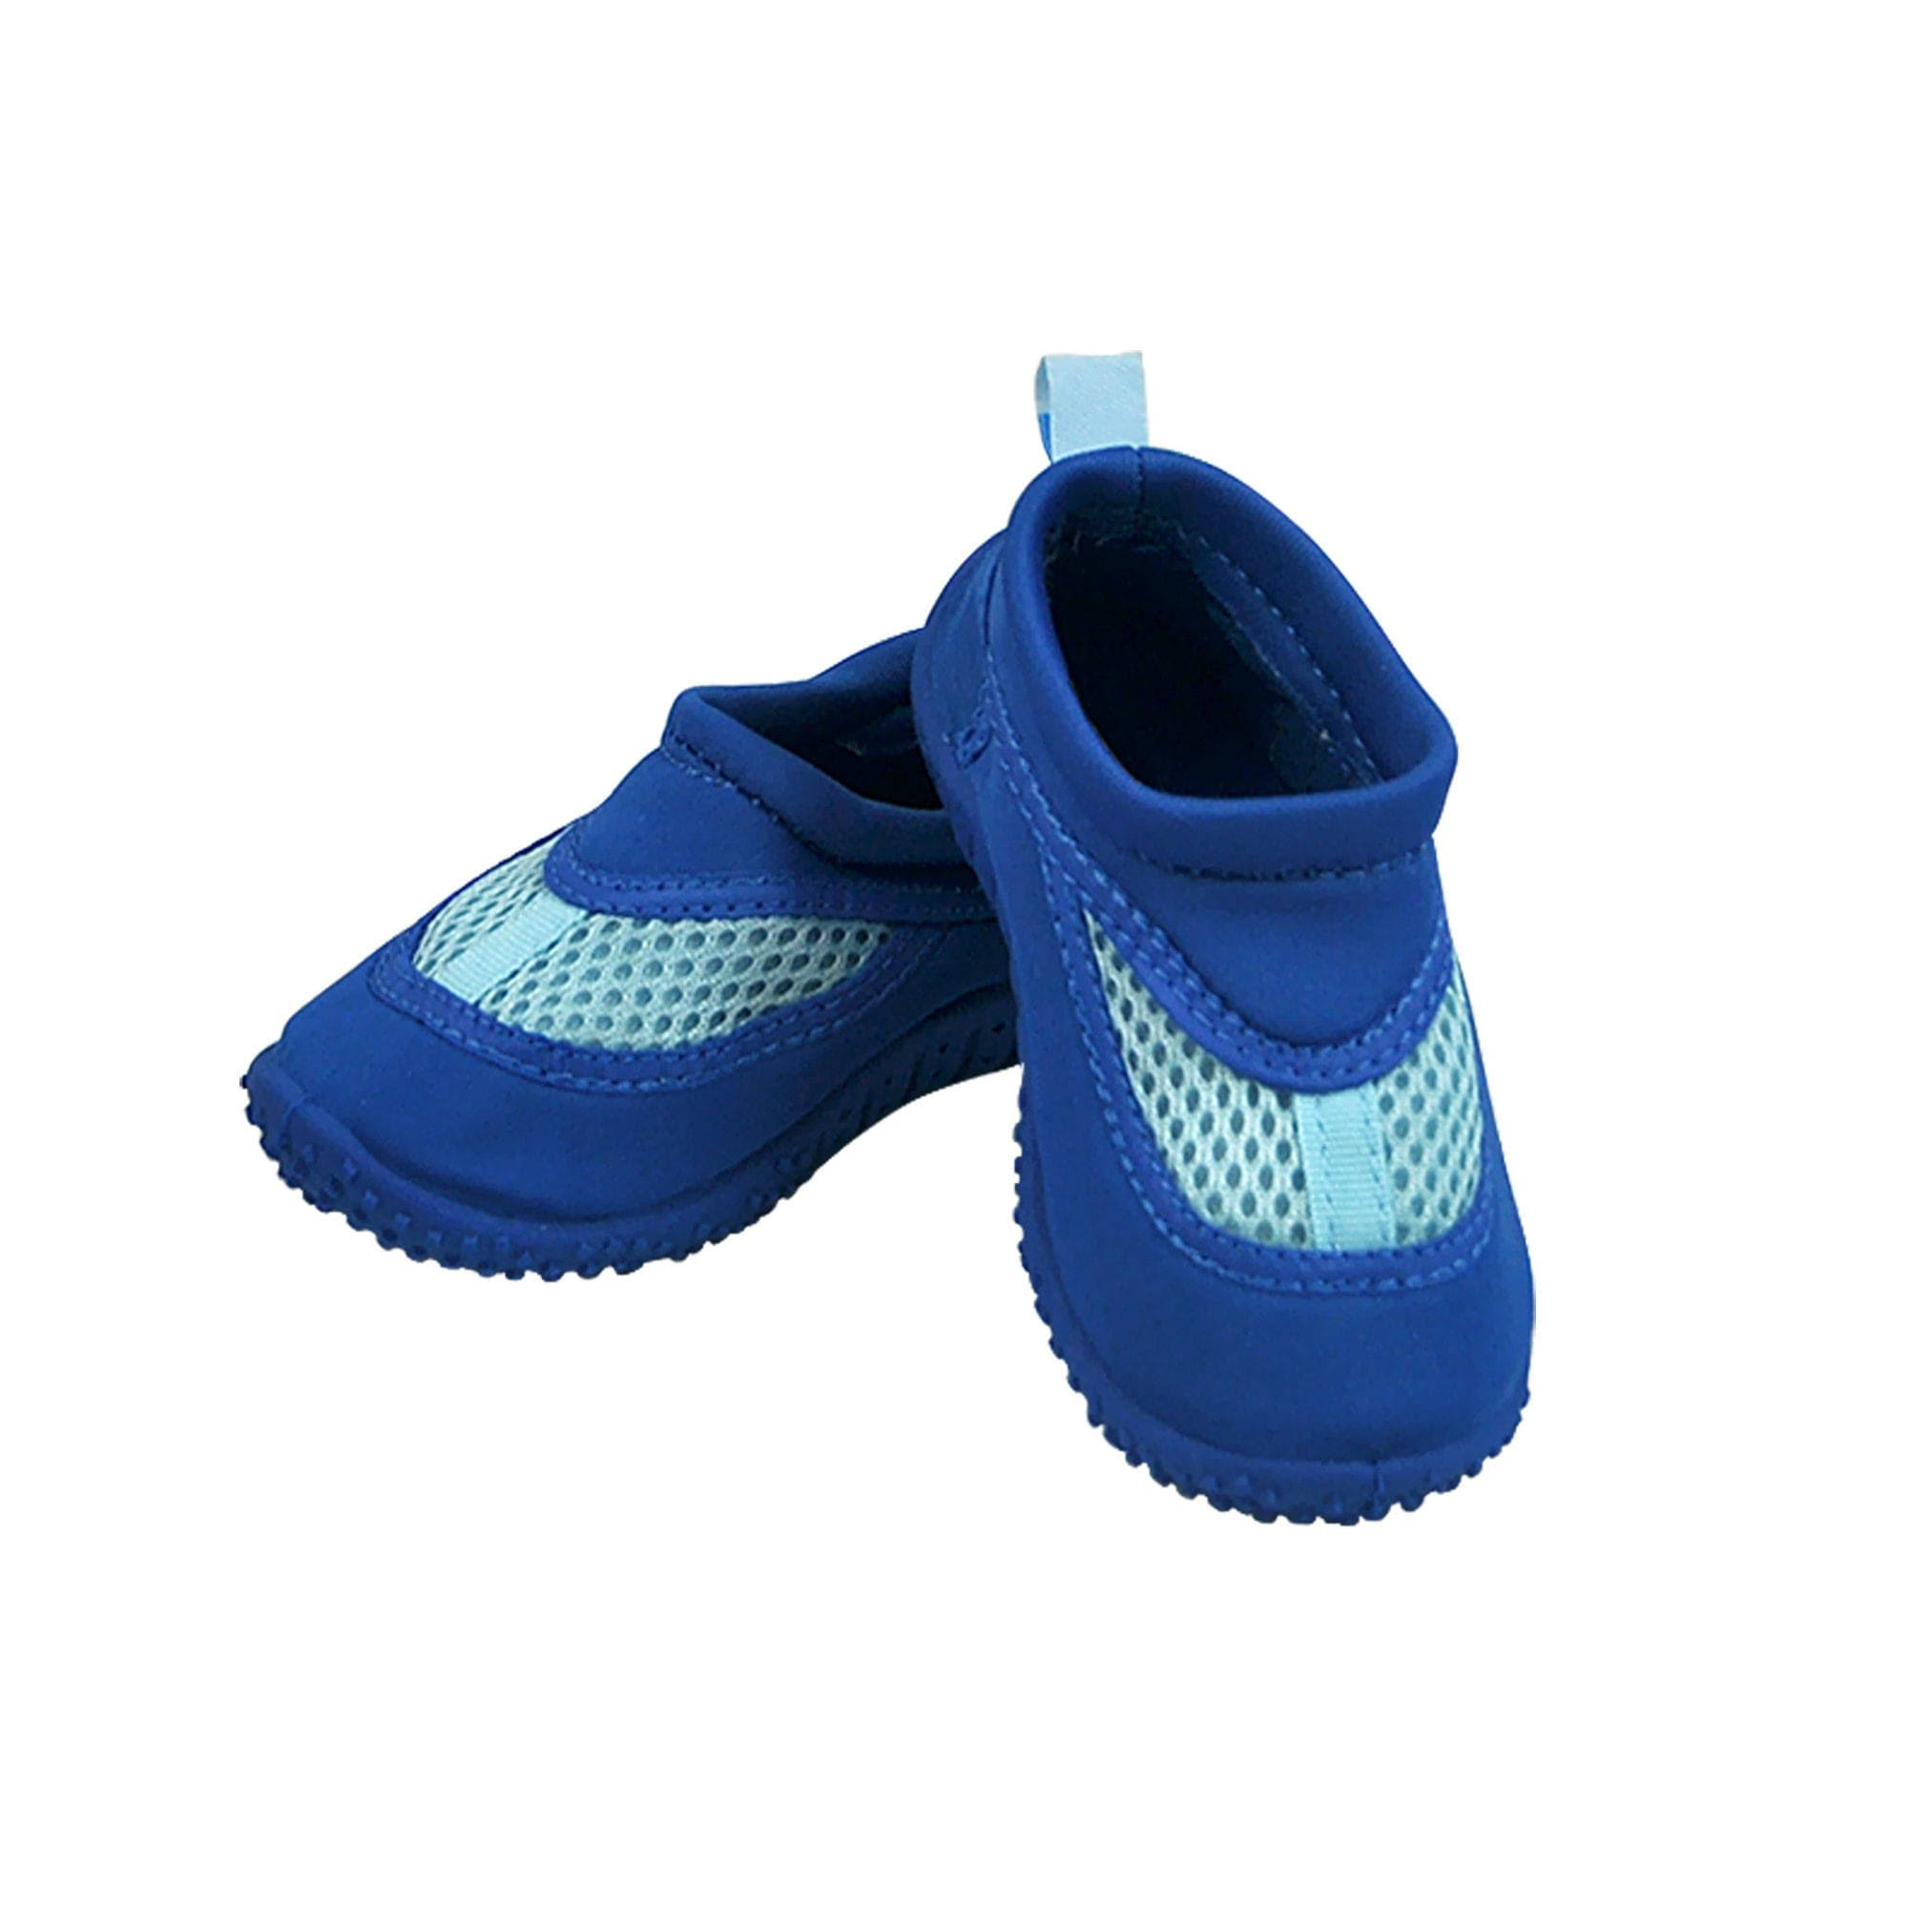 I Play Baby Unisex Swim Shoes - Royal Blue, 4 US